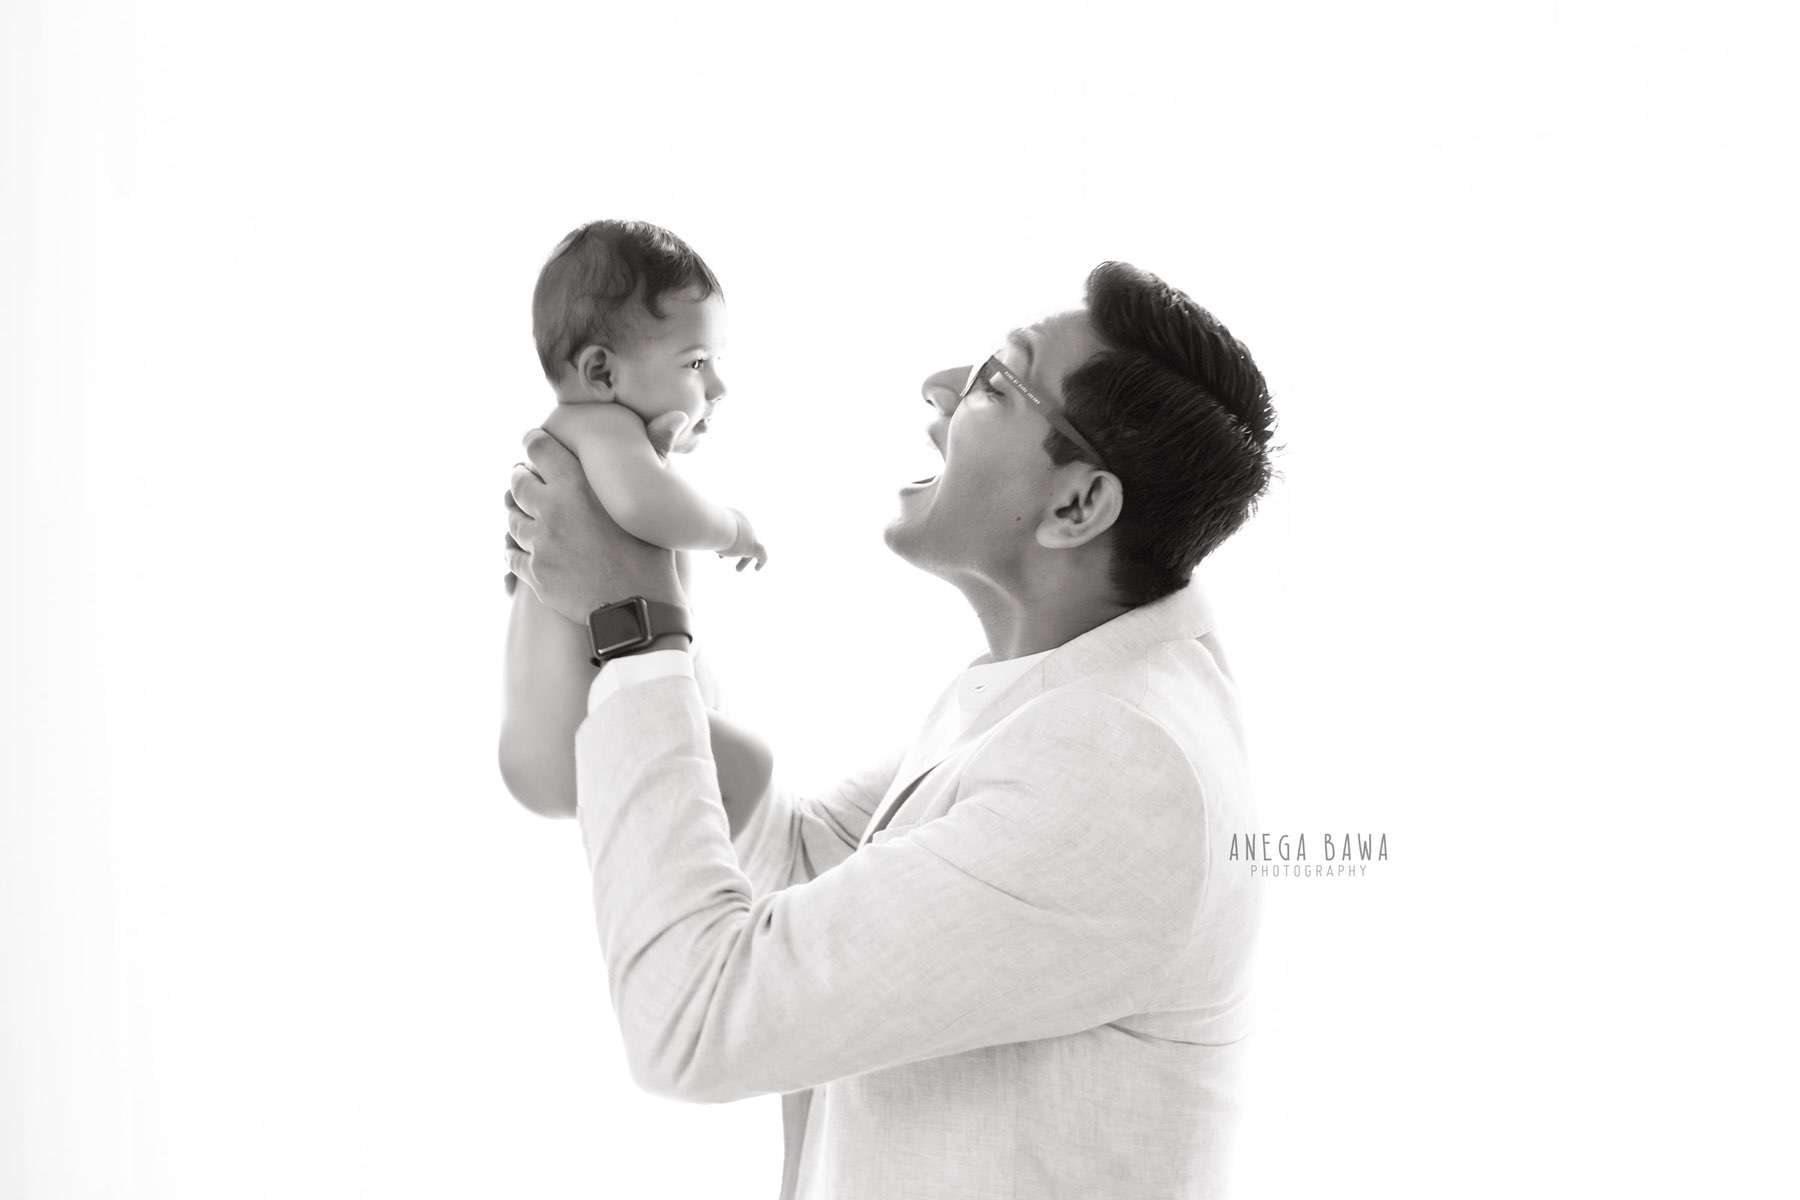 249912-black-and-white-father-and-baby-photography-delhi-4-5-6-7-months-baby-photoshoot-gurgaon-anega-bawa